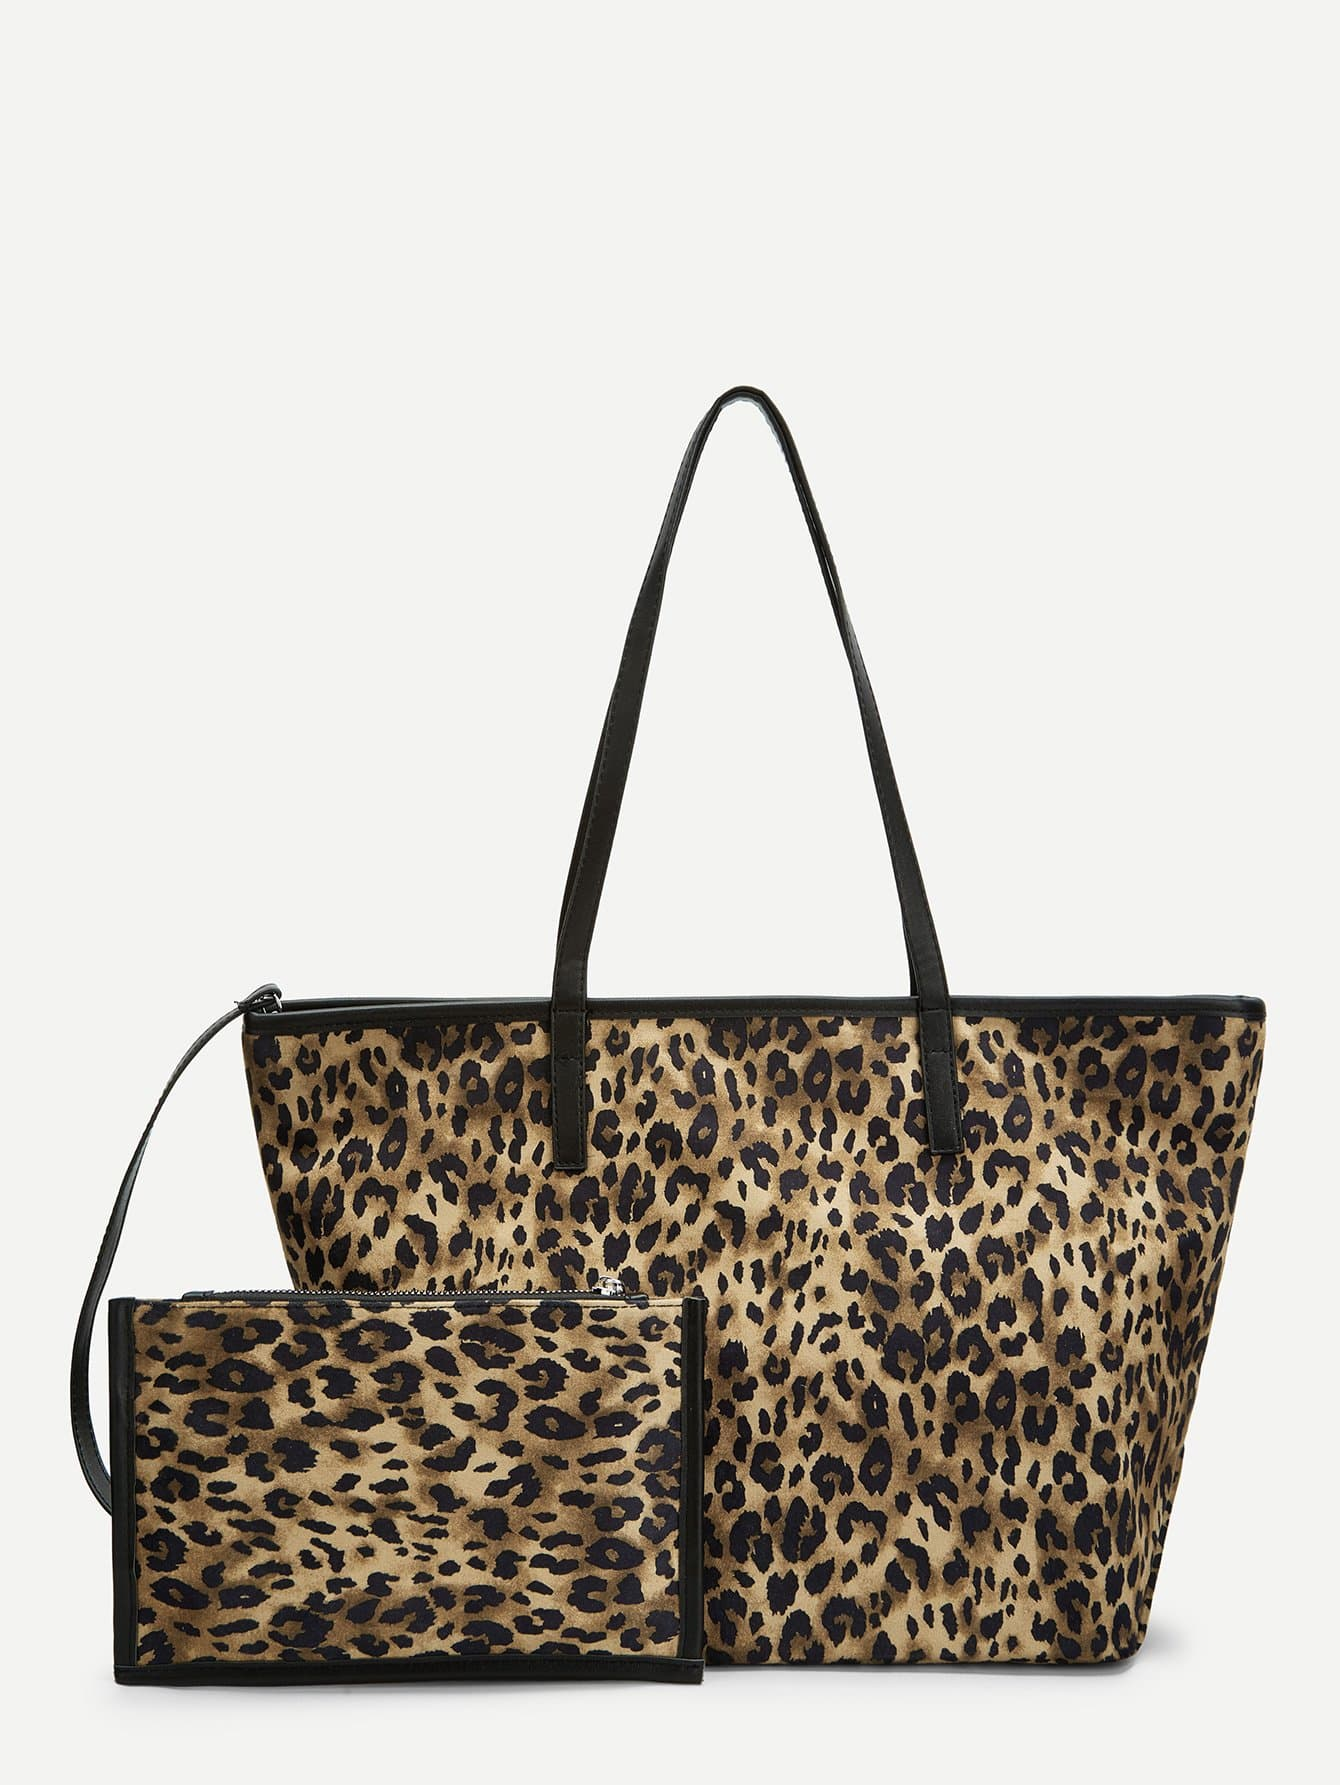 Leopard Pattern Tote Bag With Clutch